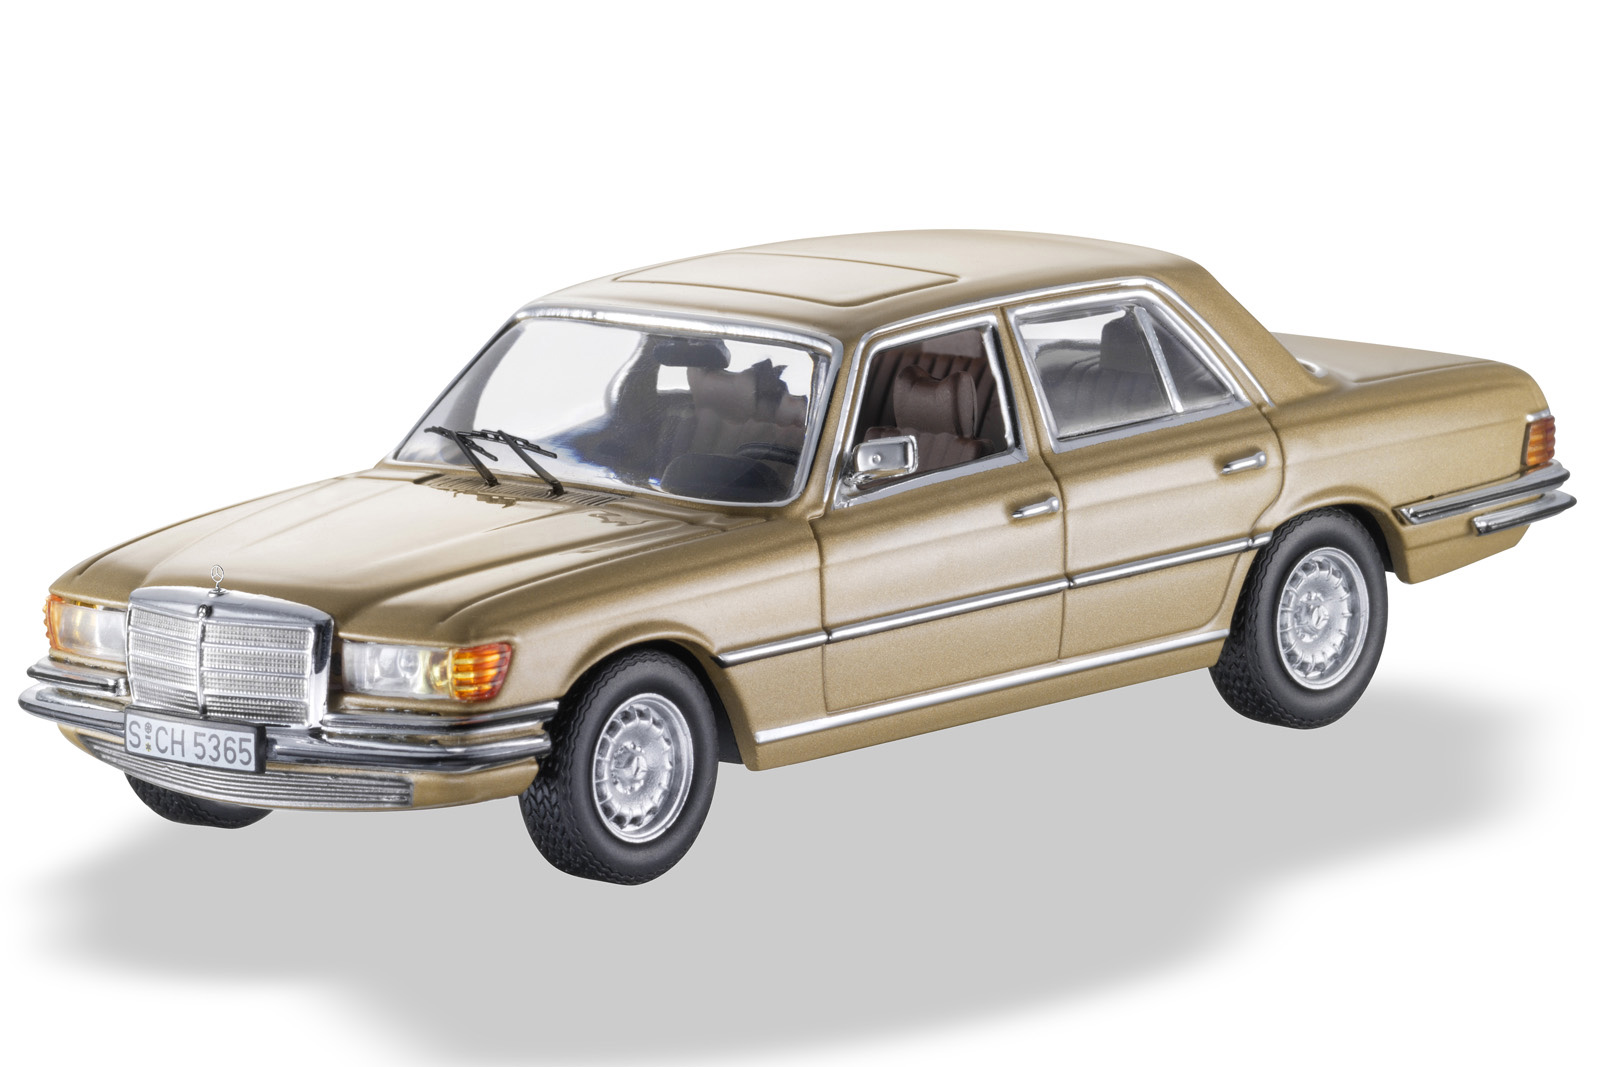 S Class, W116, Model Car